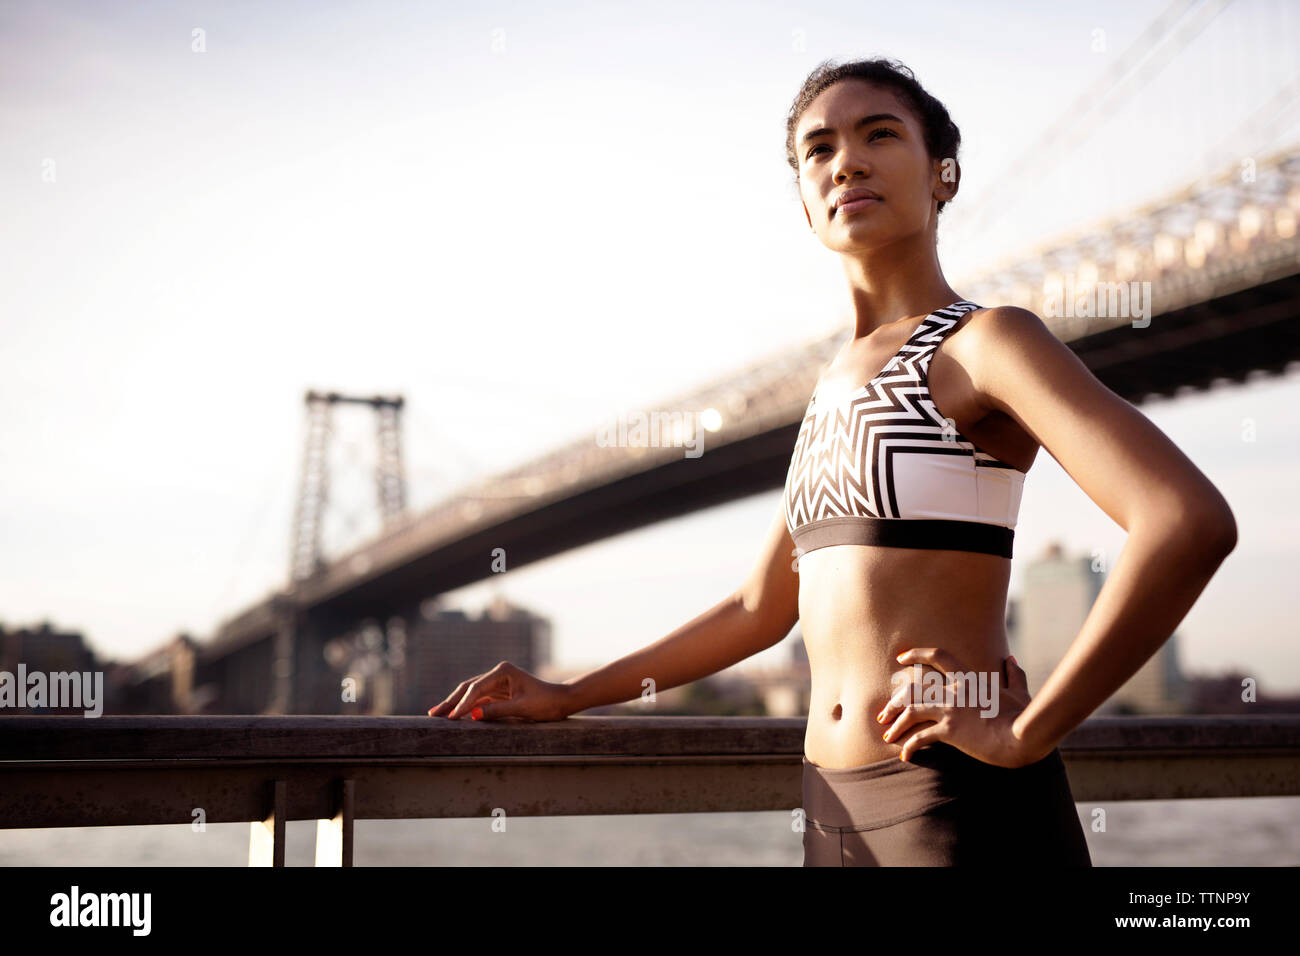 Sporty woman standing by railing against Williamsburg Bridge - Stock Photo